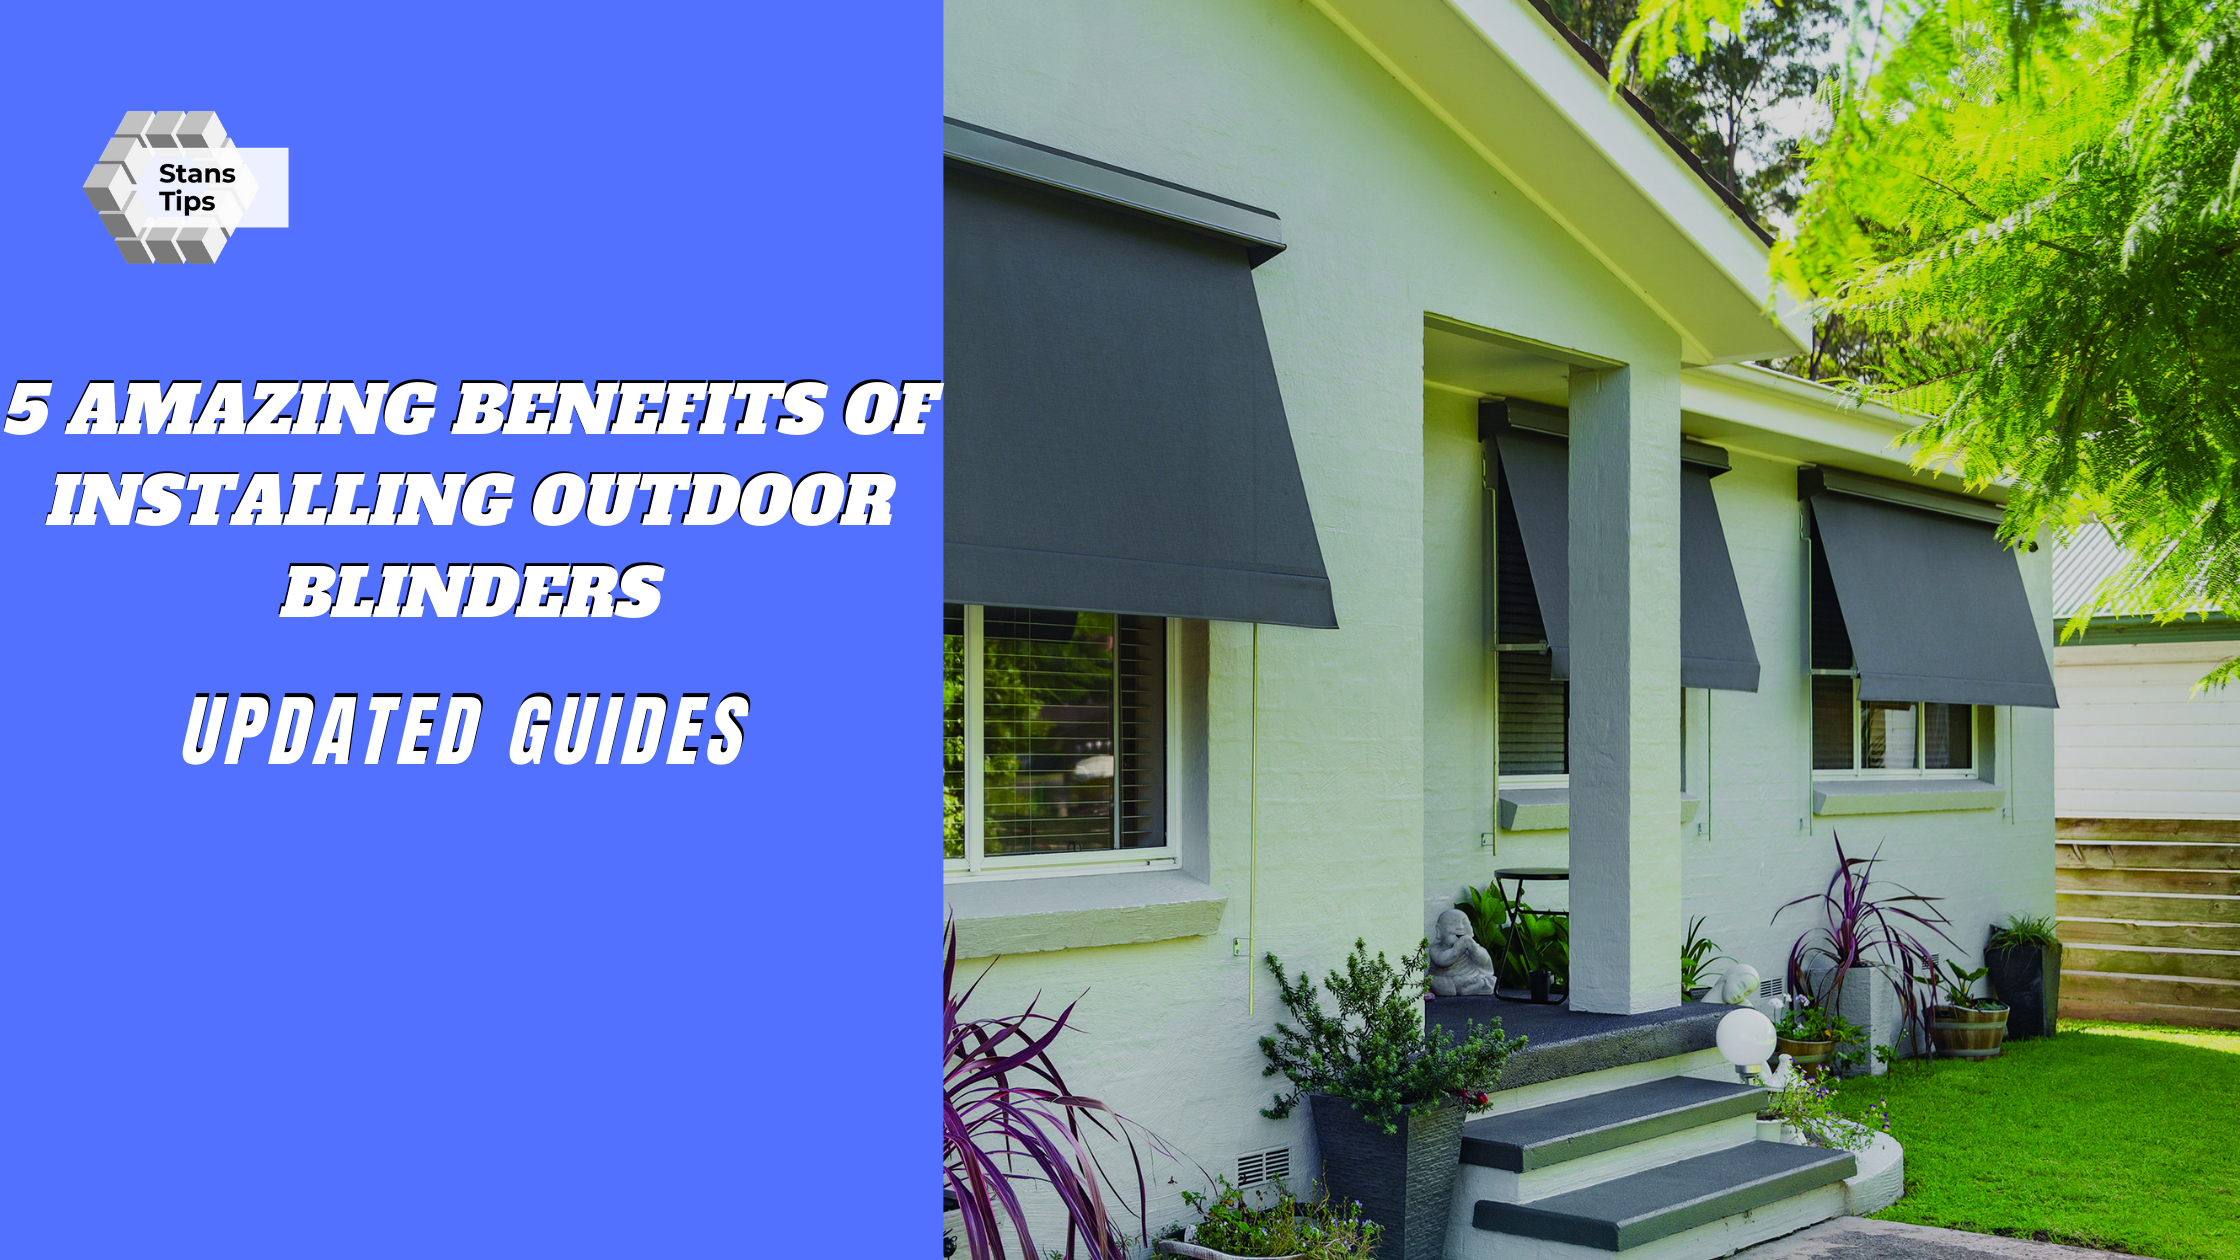 5 Amazing benefits of installing outdoor blinders for your home